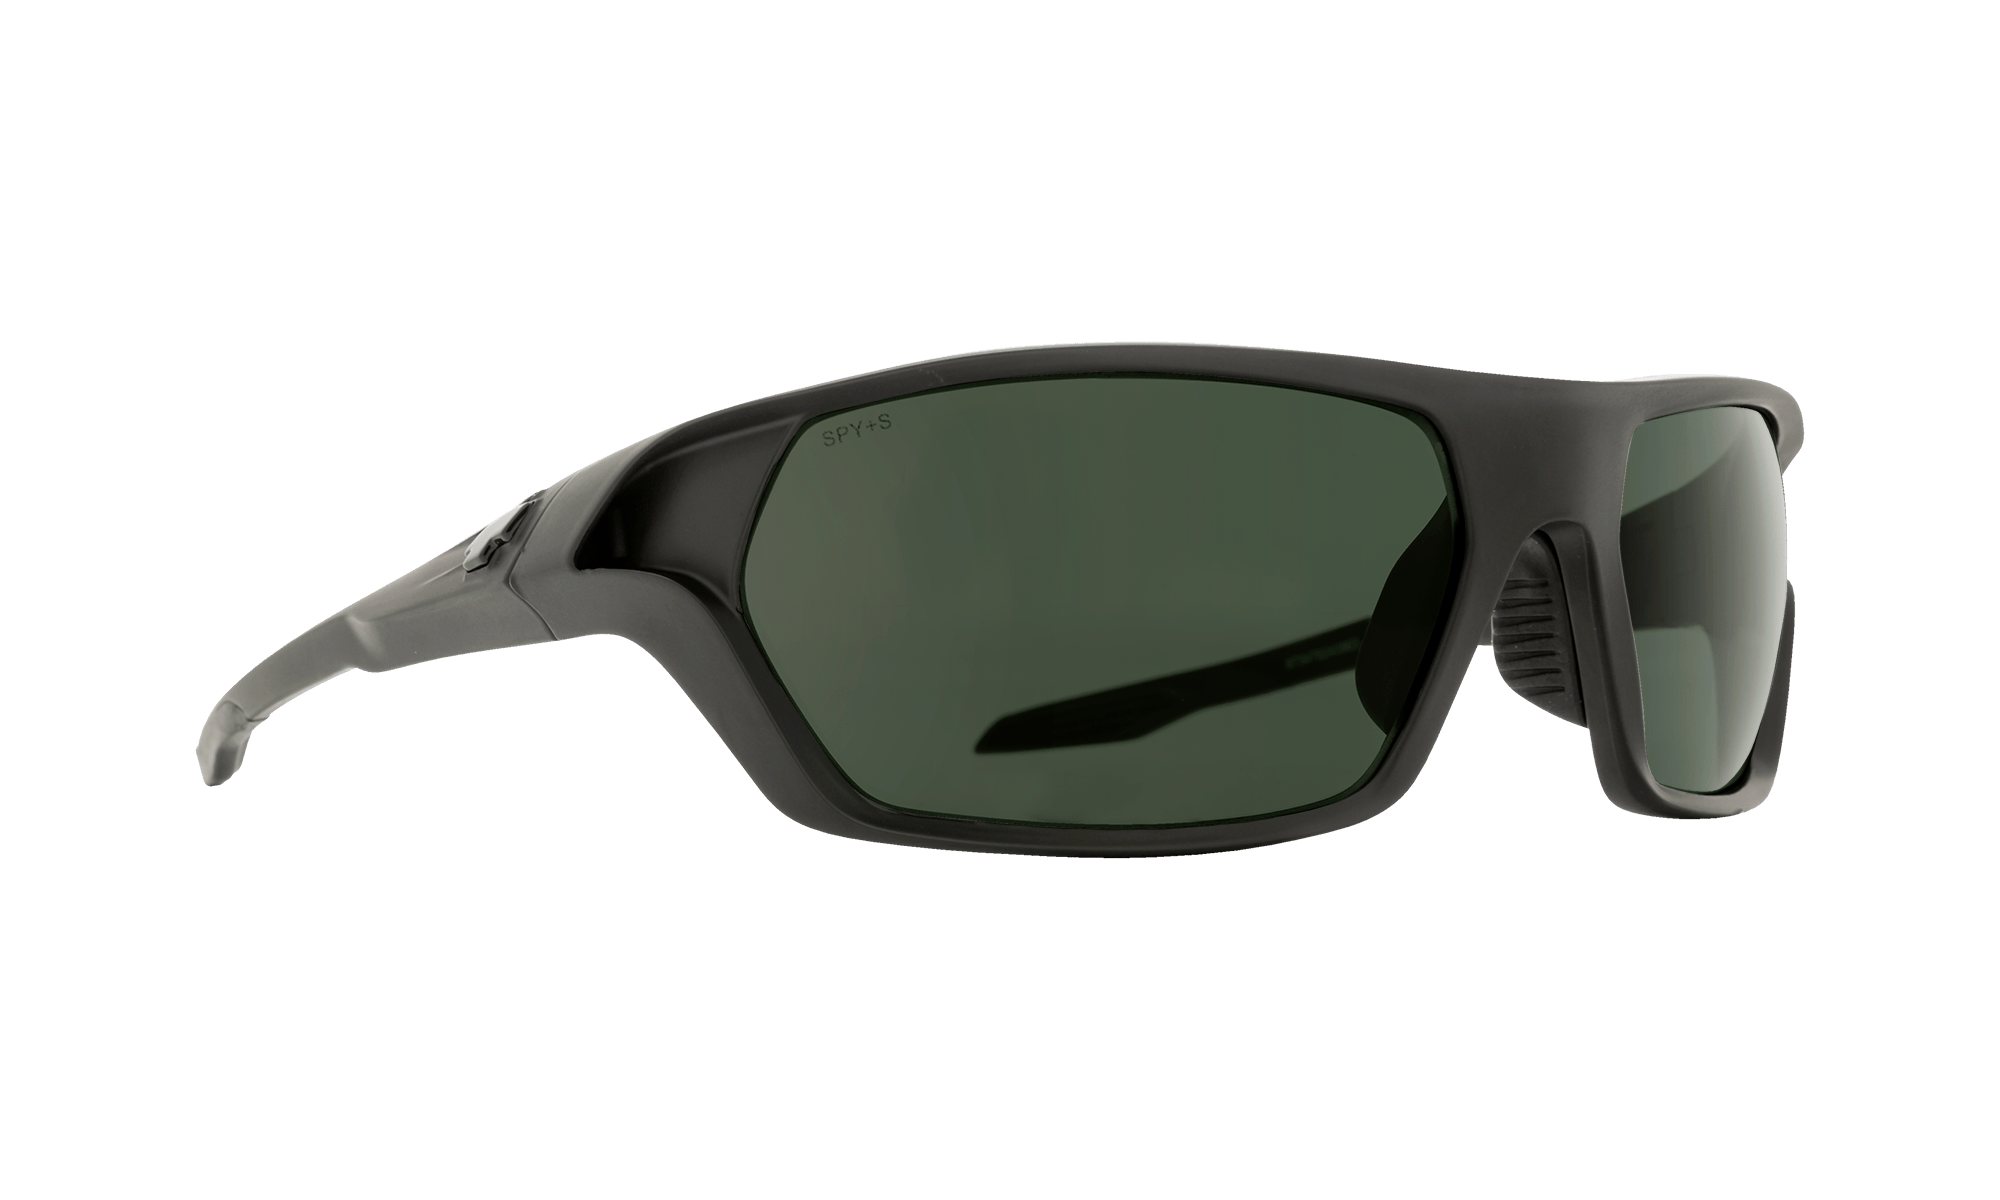 SPY Quanta 2  Sunglasses  Happy Gray Green  64-18-125